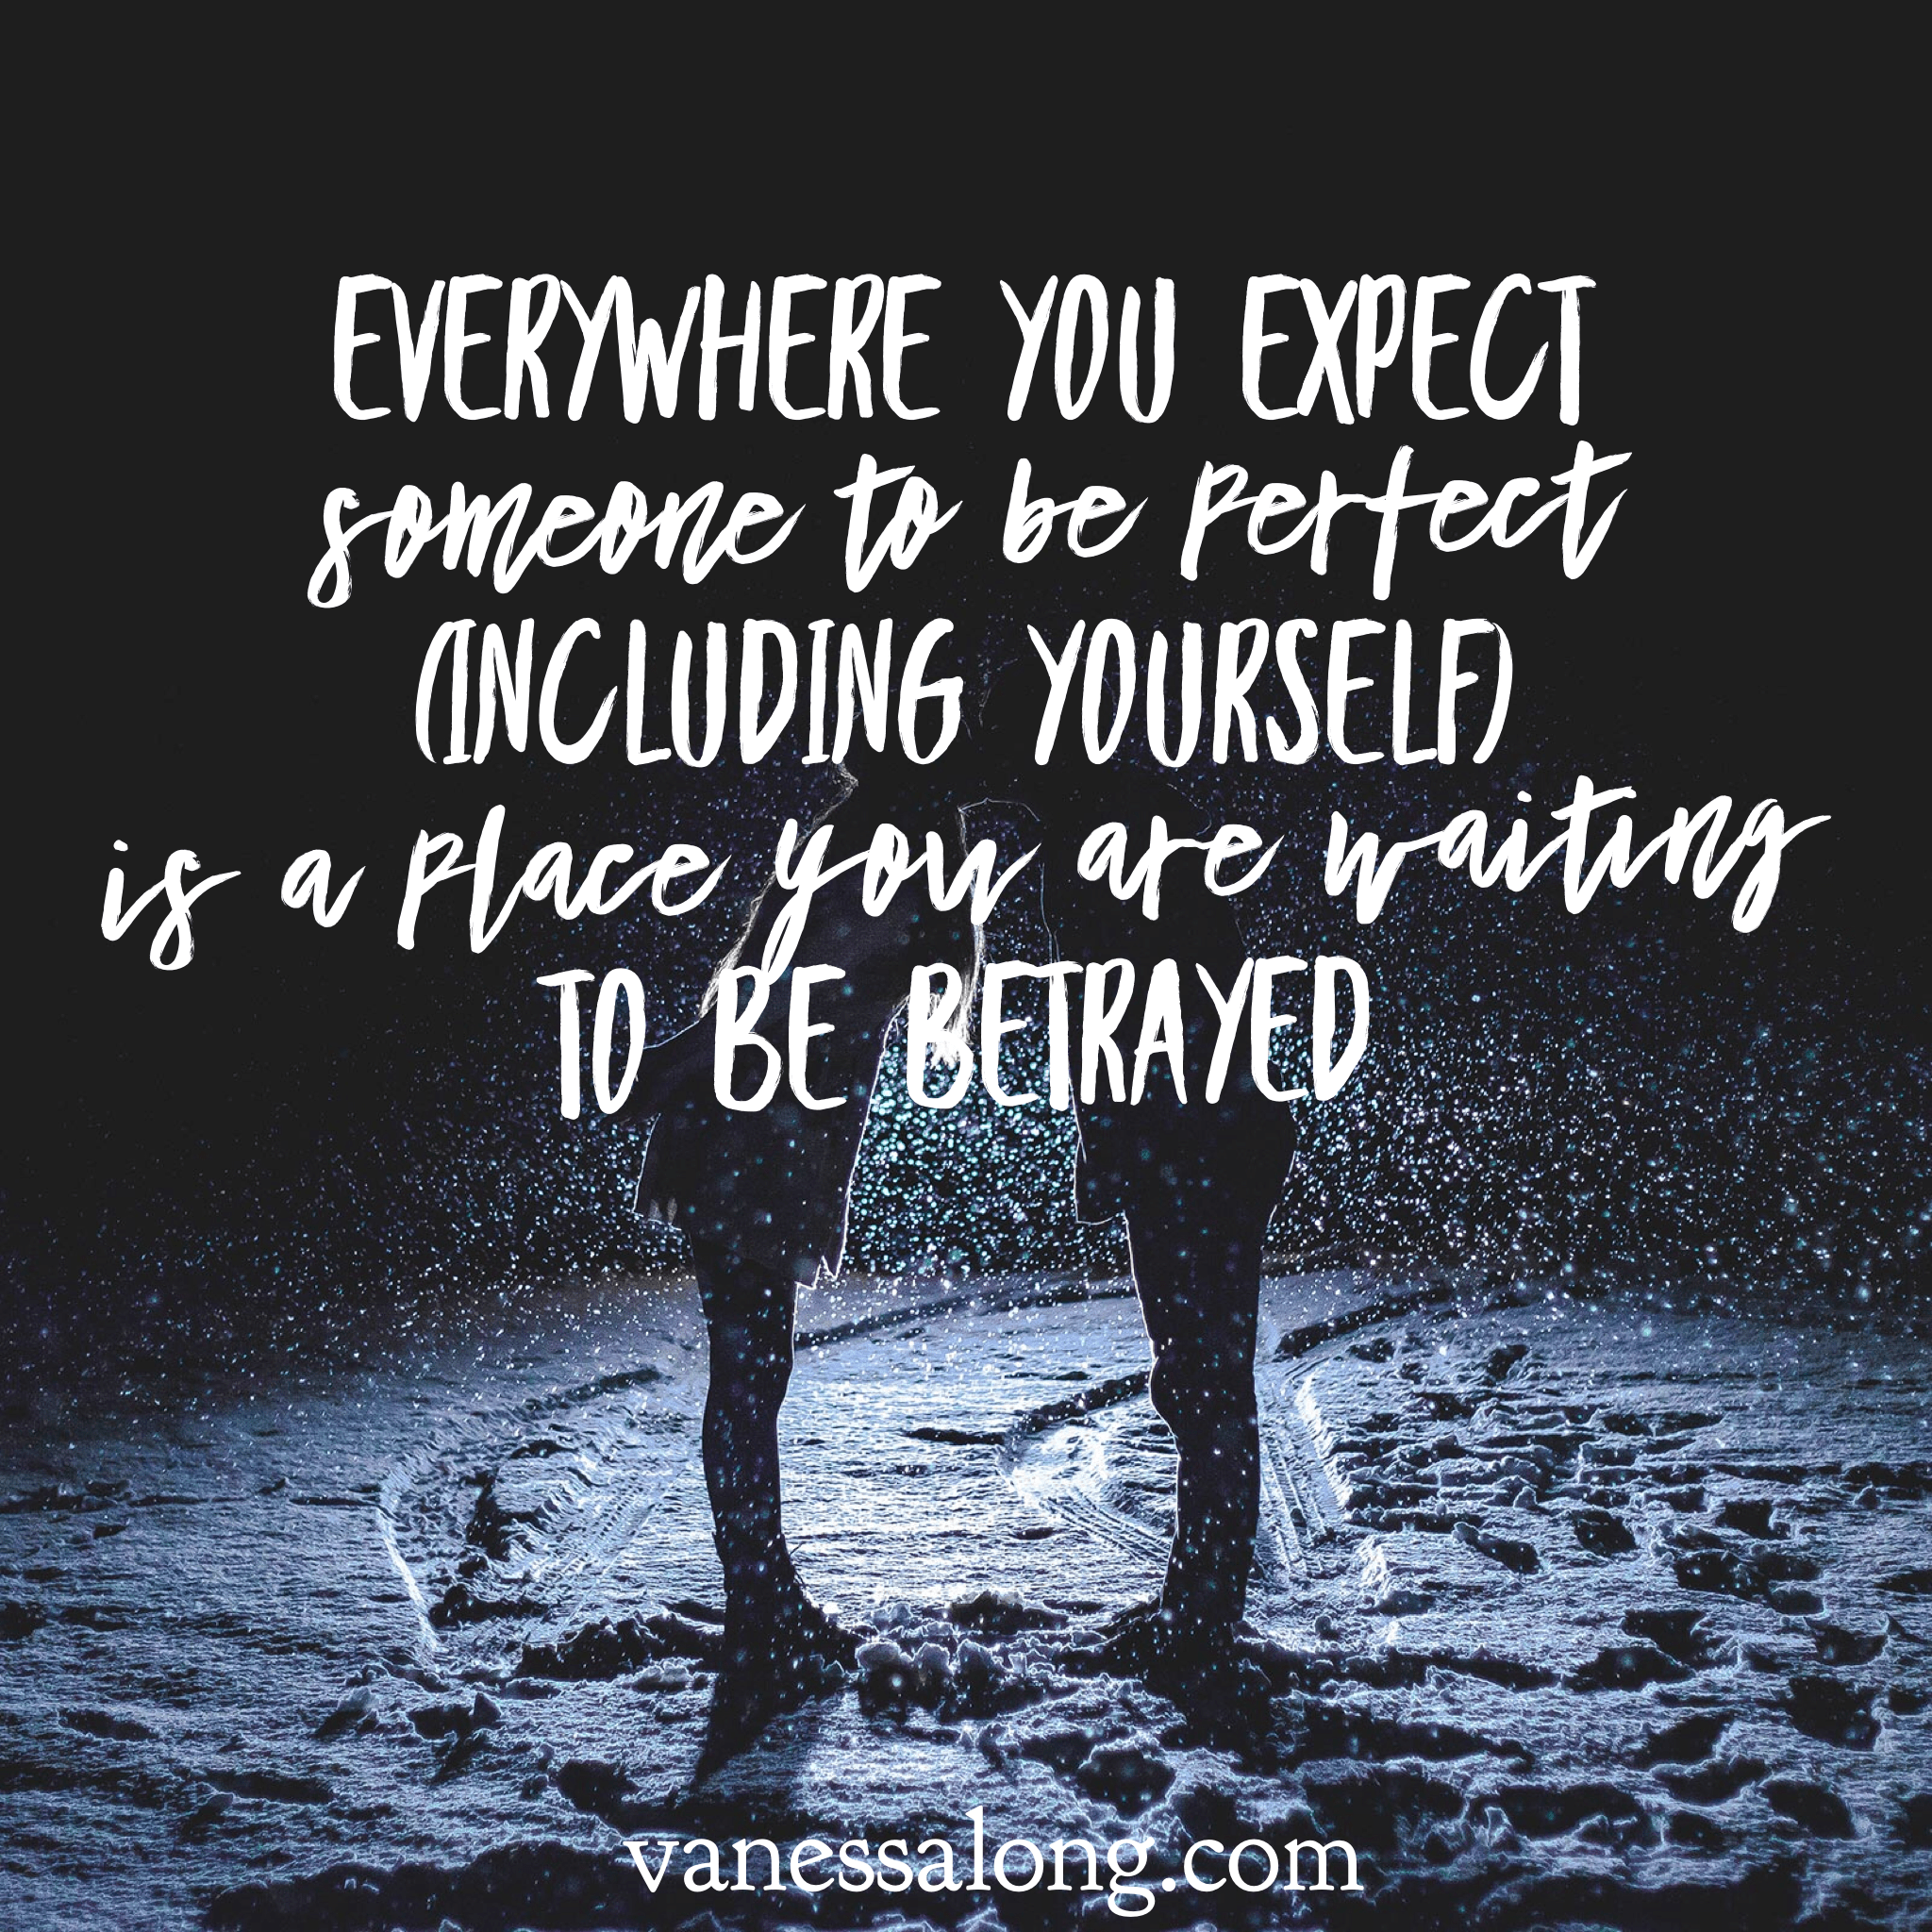 everywhere you expect someone to be perfect - including yourself - is a place you are waiting to be betrayed